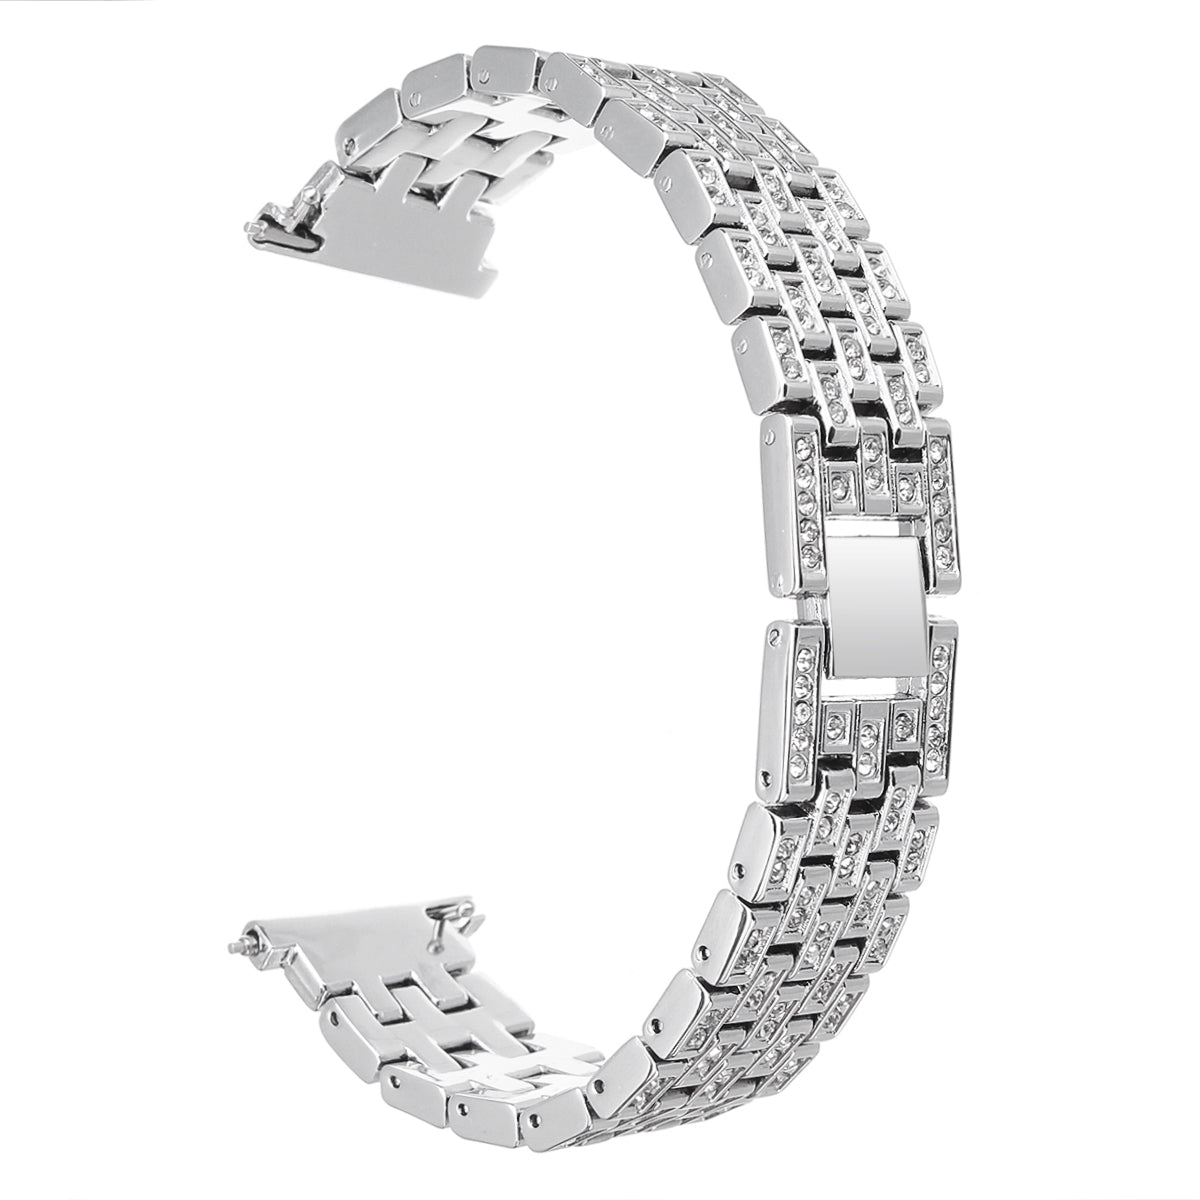 Fitbit Versa 12mm Replacement Stainless Steel Diamond Wrist Watch Band Strap For Fitbit Versa